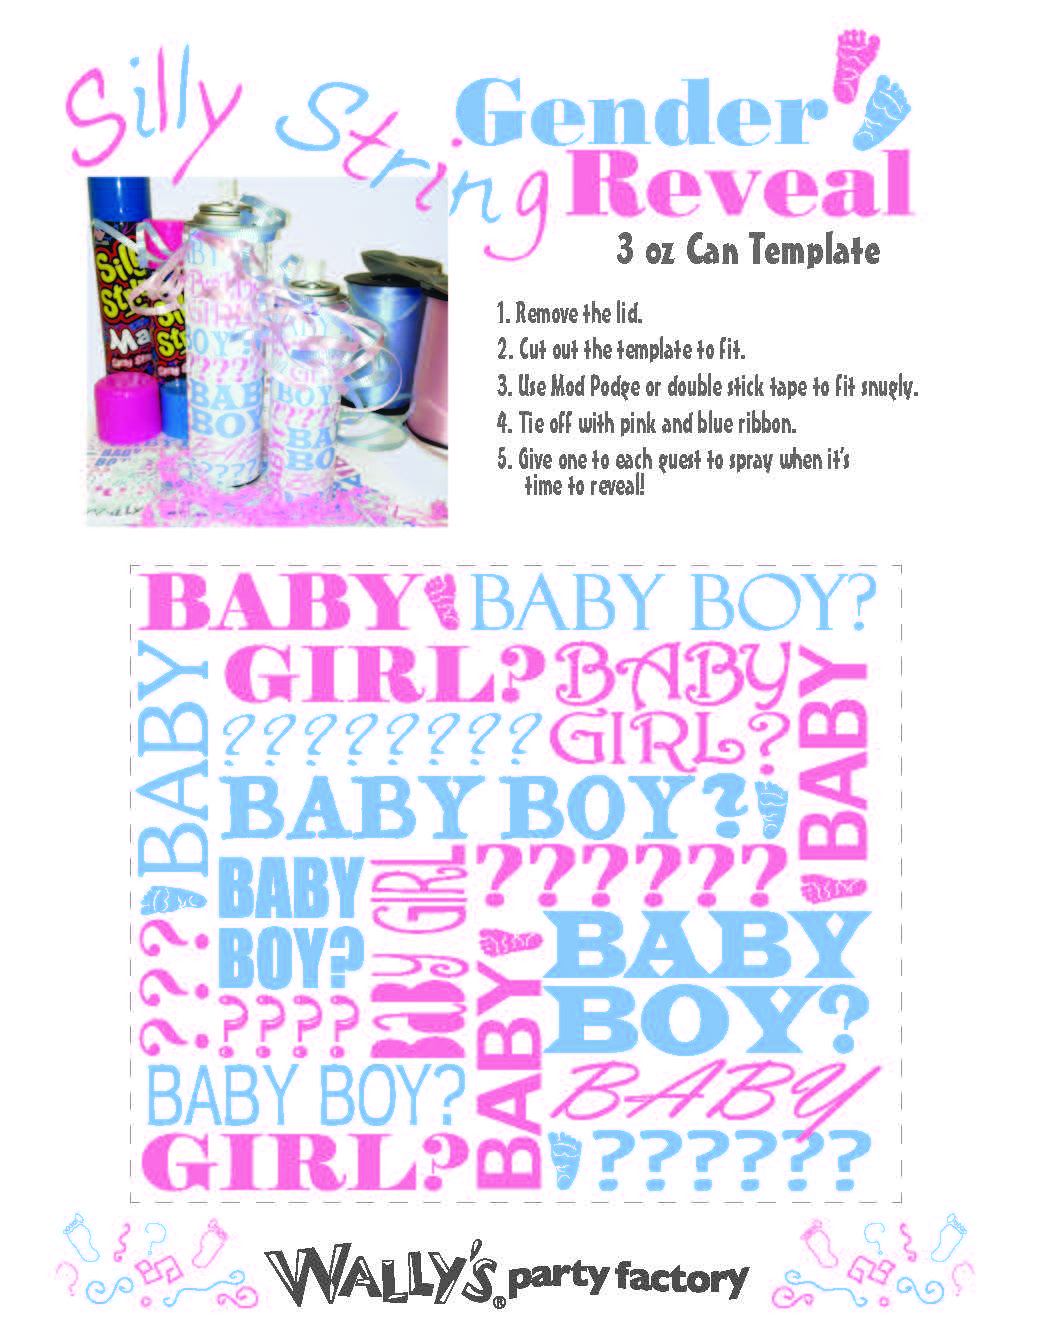 Printable for silly string cans. Gender reveal | Baby | Pinterest ...